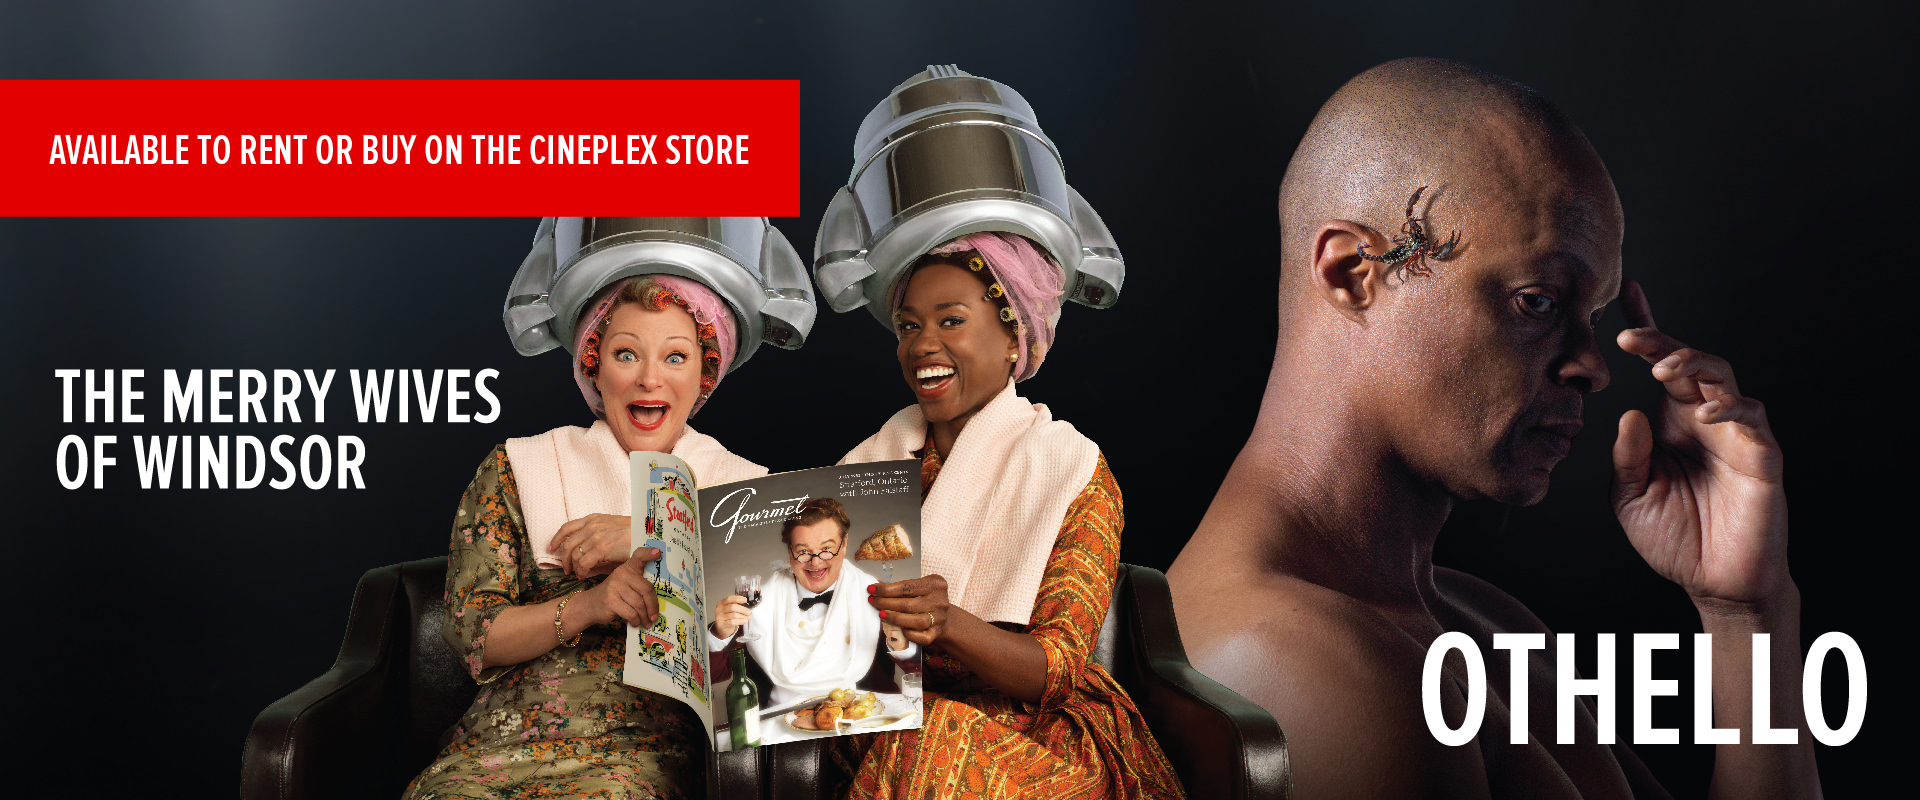 THE MERRY WIVES OF WINDSOR AND OTHELLO NOW AVAILABLE ON CINEPLEX.COM